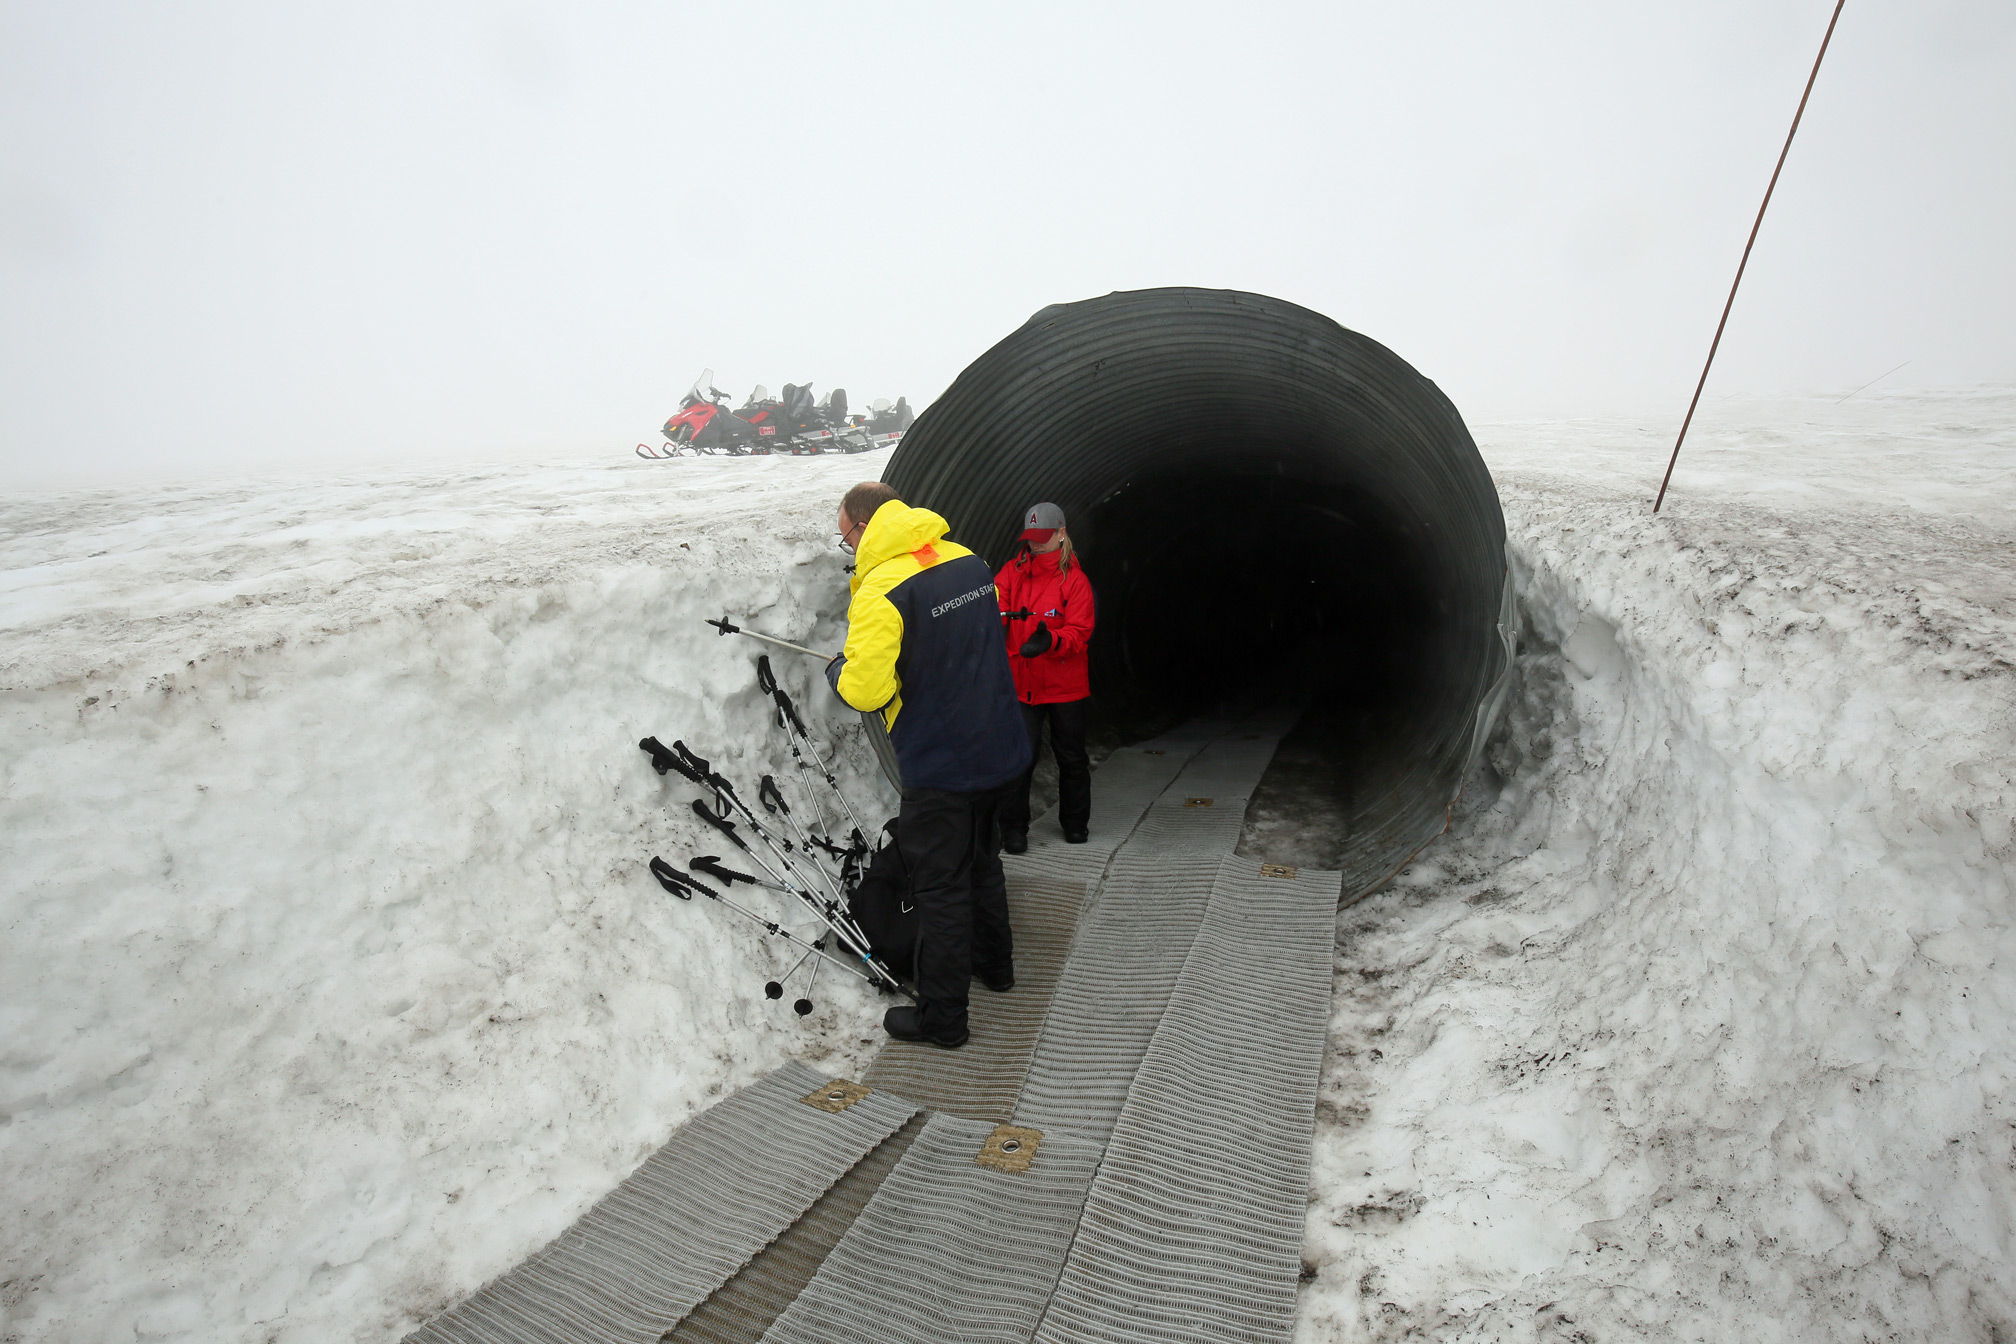 Entrance to sub-glacial ice tunnel on Langjokull glacier, Iceland.